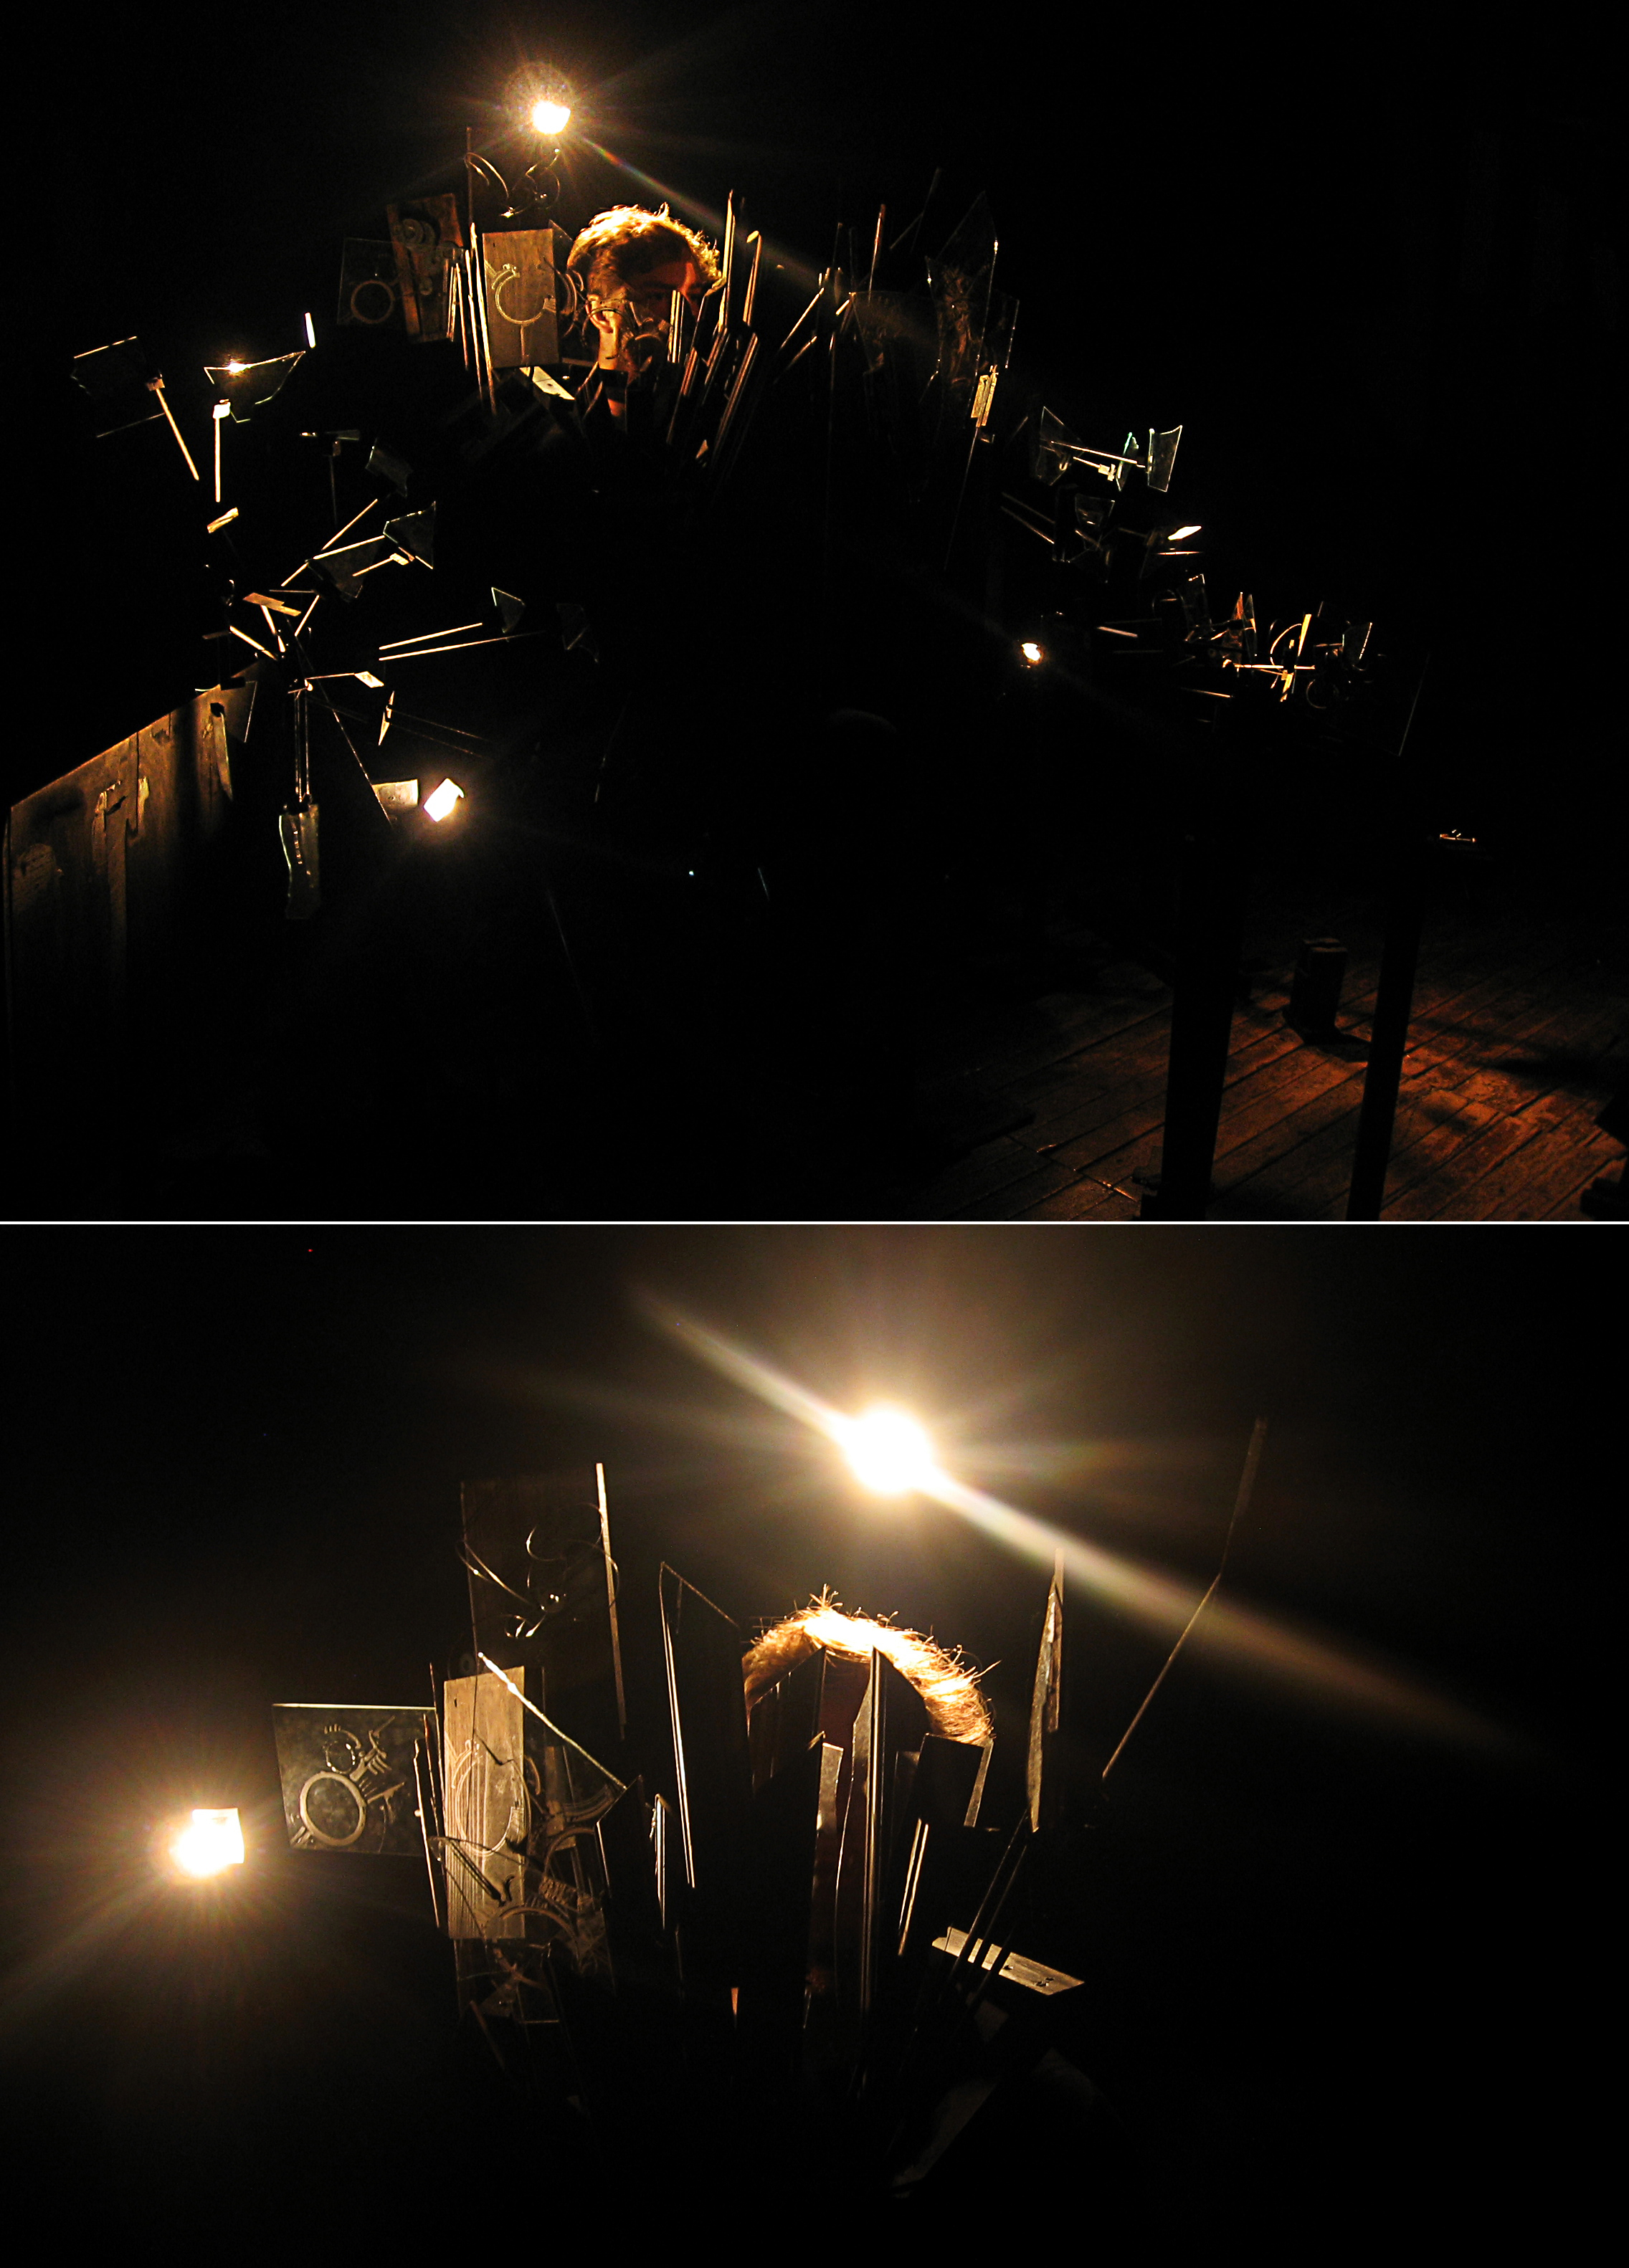 April 2015 - Nick Meryhew performing within a dark scene of sculptures and a large headdress made of wood and glass (artwork by Shawn Lucas).